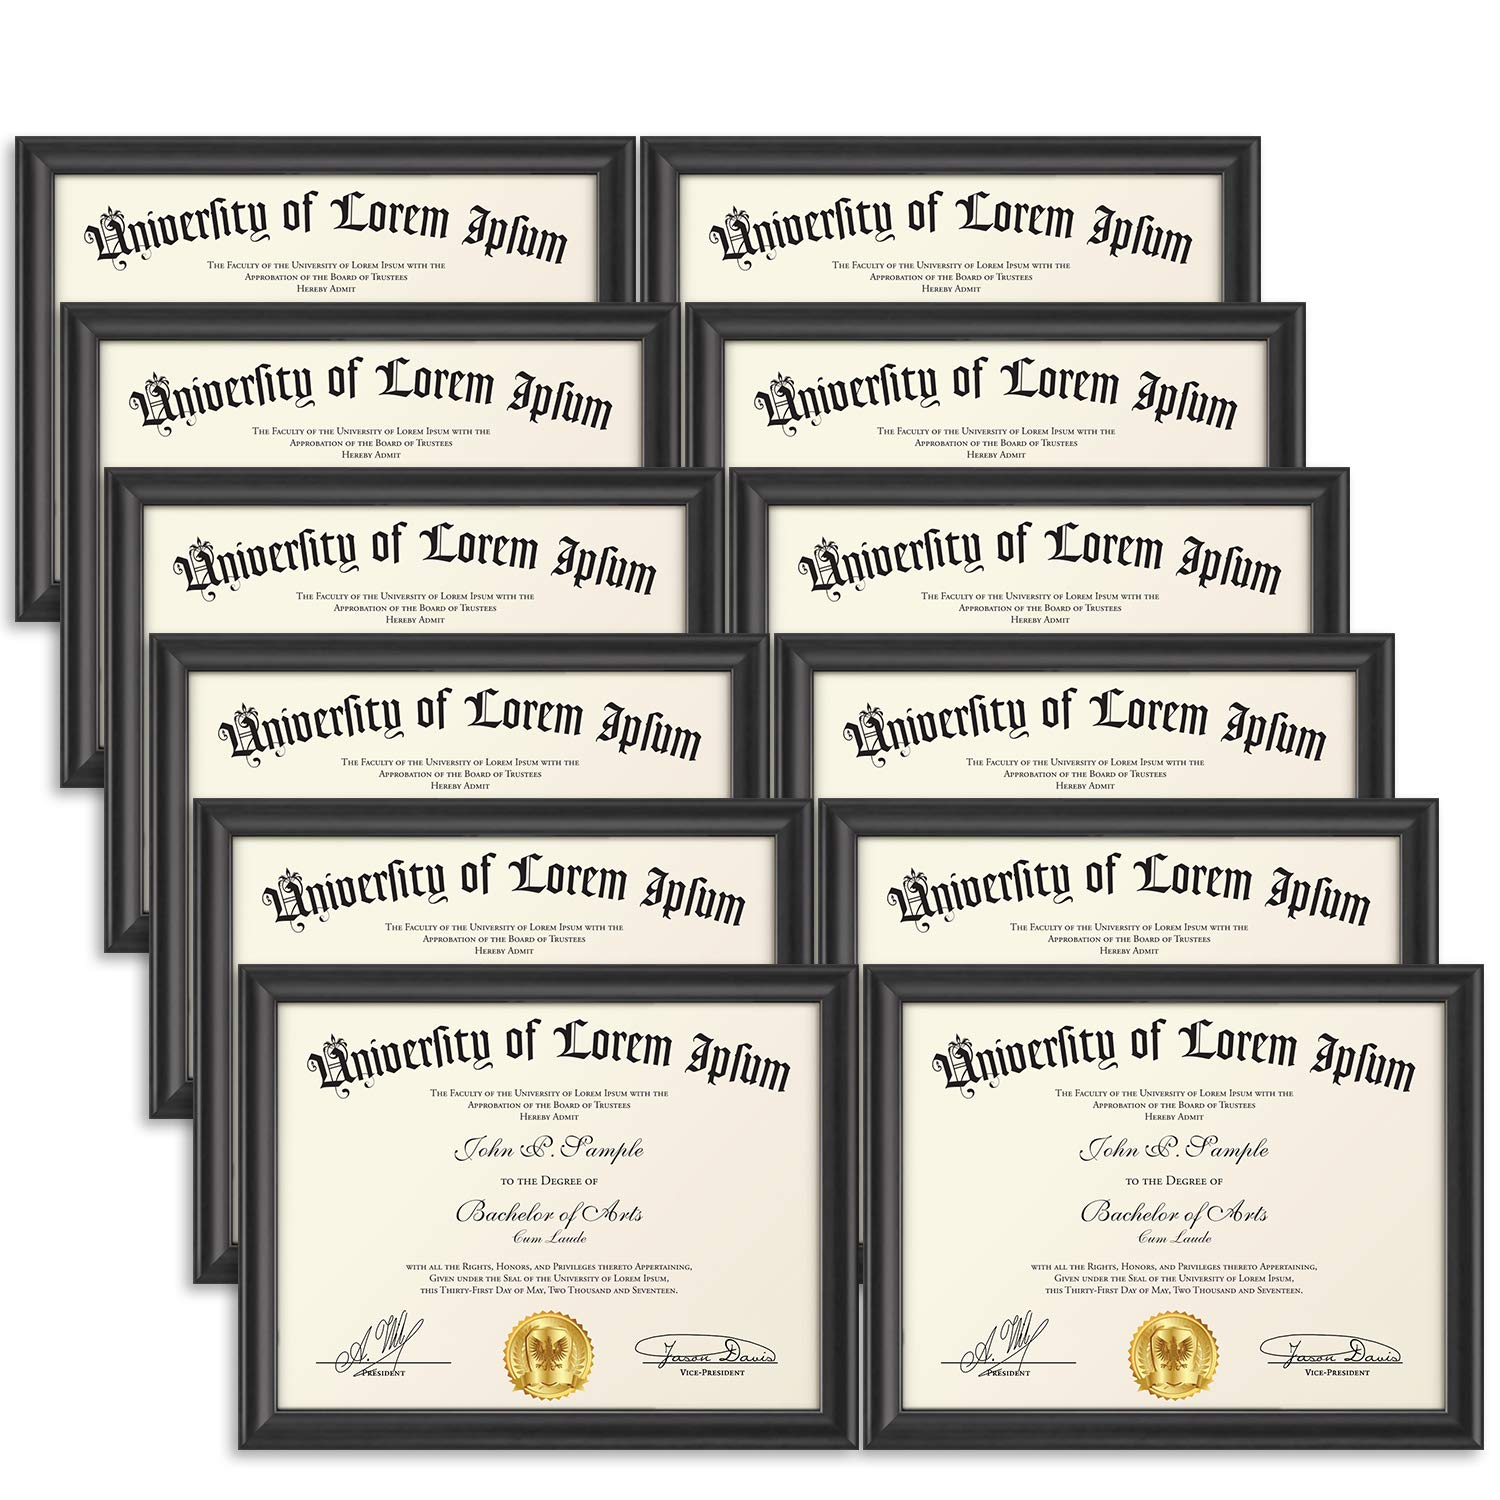 Icona Bay 8.5x11 Document Frame (12 Pack, Black), Black Certificate Frame 8.5 x 11, Composite Wood Diploma Frame for Walls or Tables, Set of 12 Lakeland Collection by Icona Bay (Image #1)